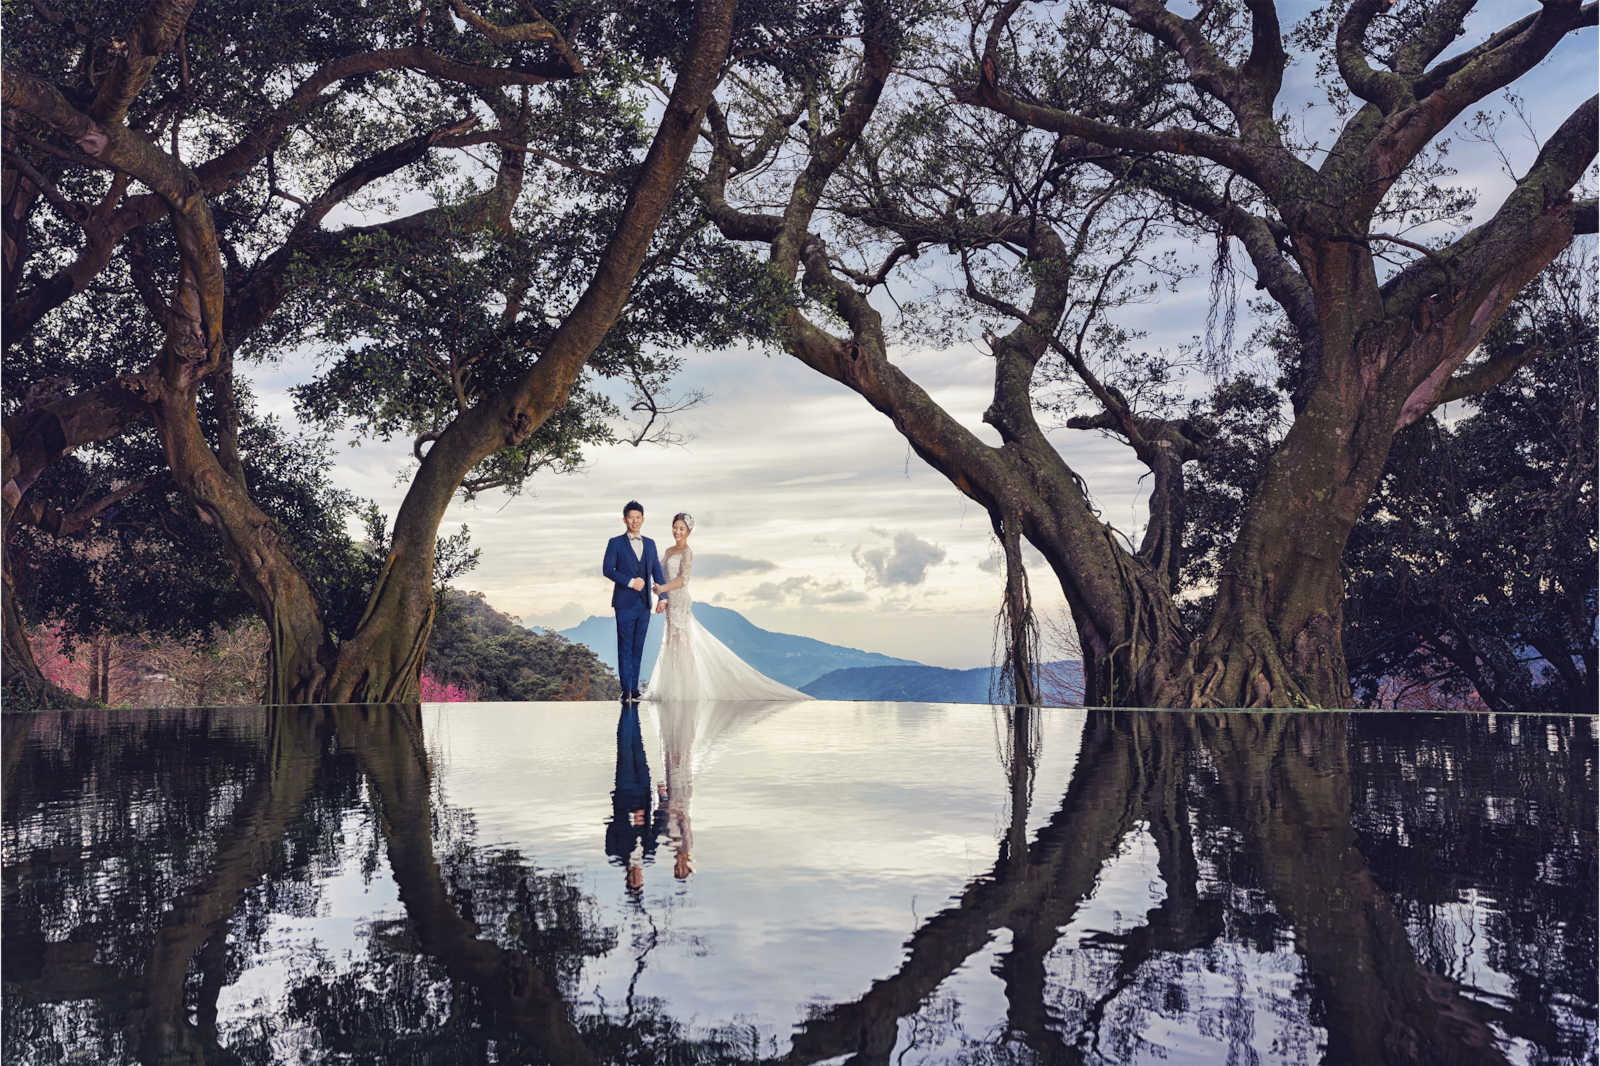 wedding couple posing by pool with reflection alpha 7RIII